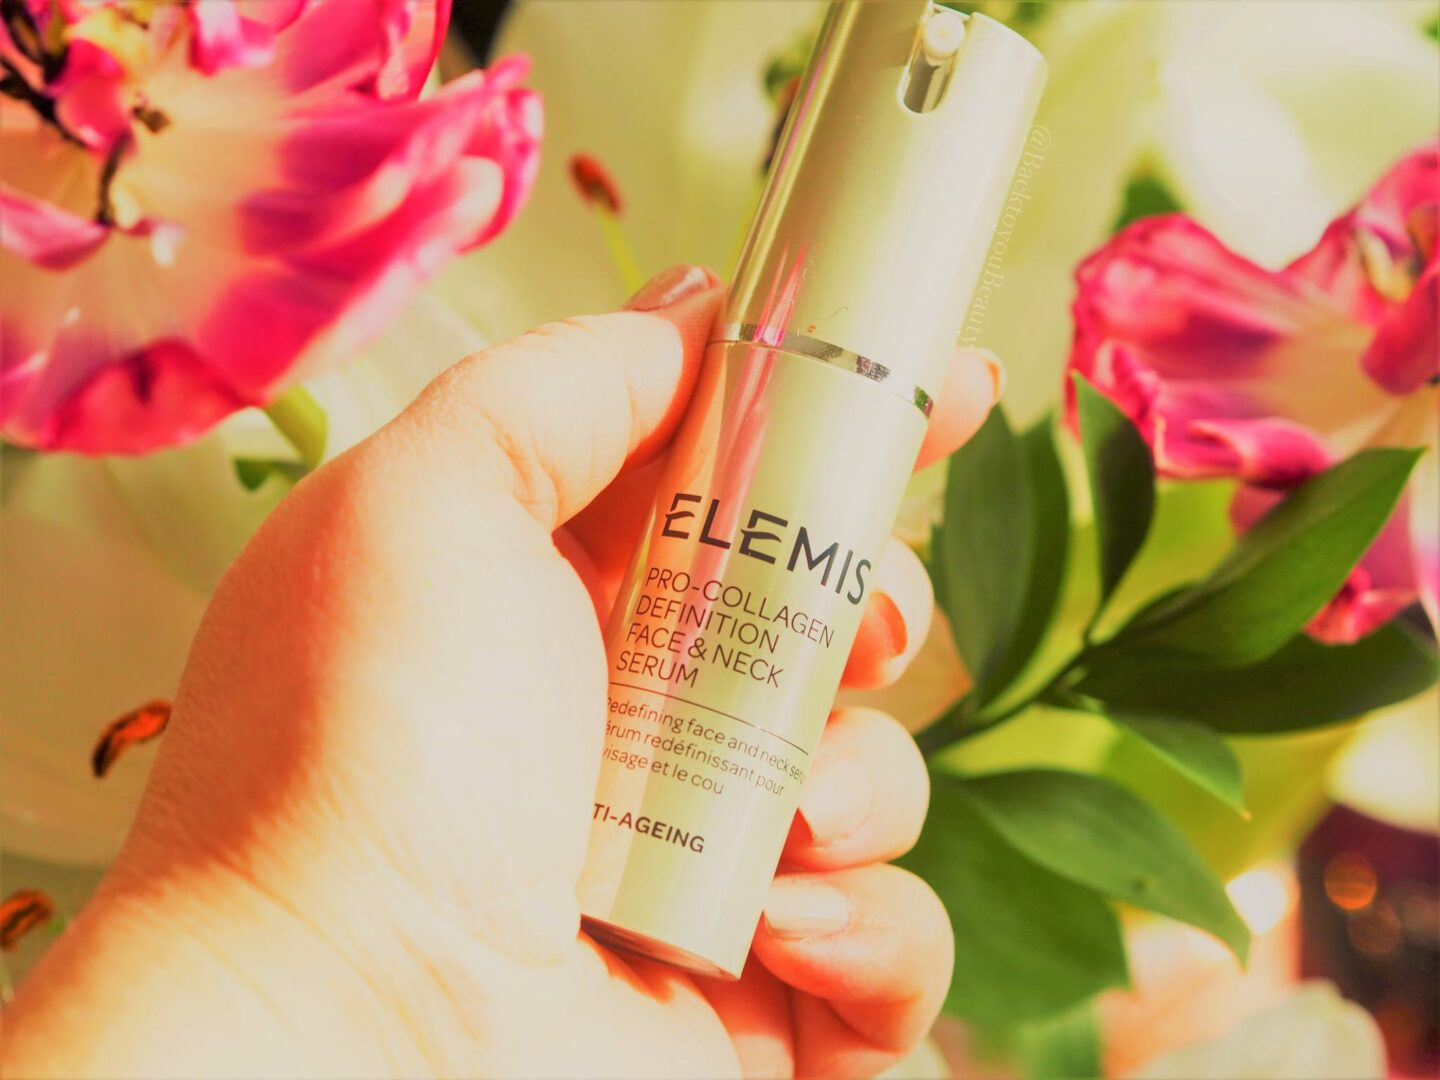 Elemis Pro Definition Face & Neck Serum